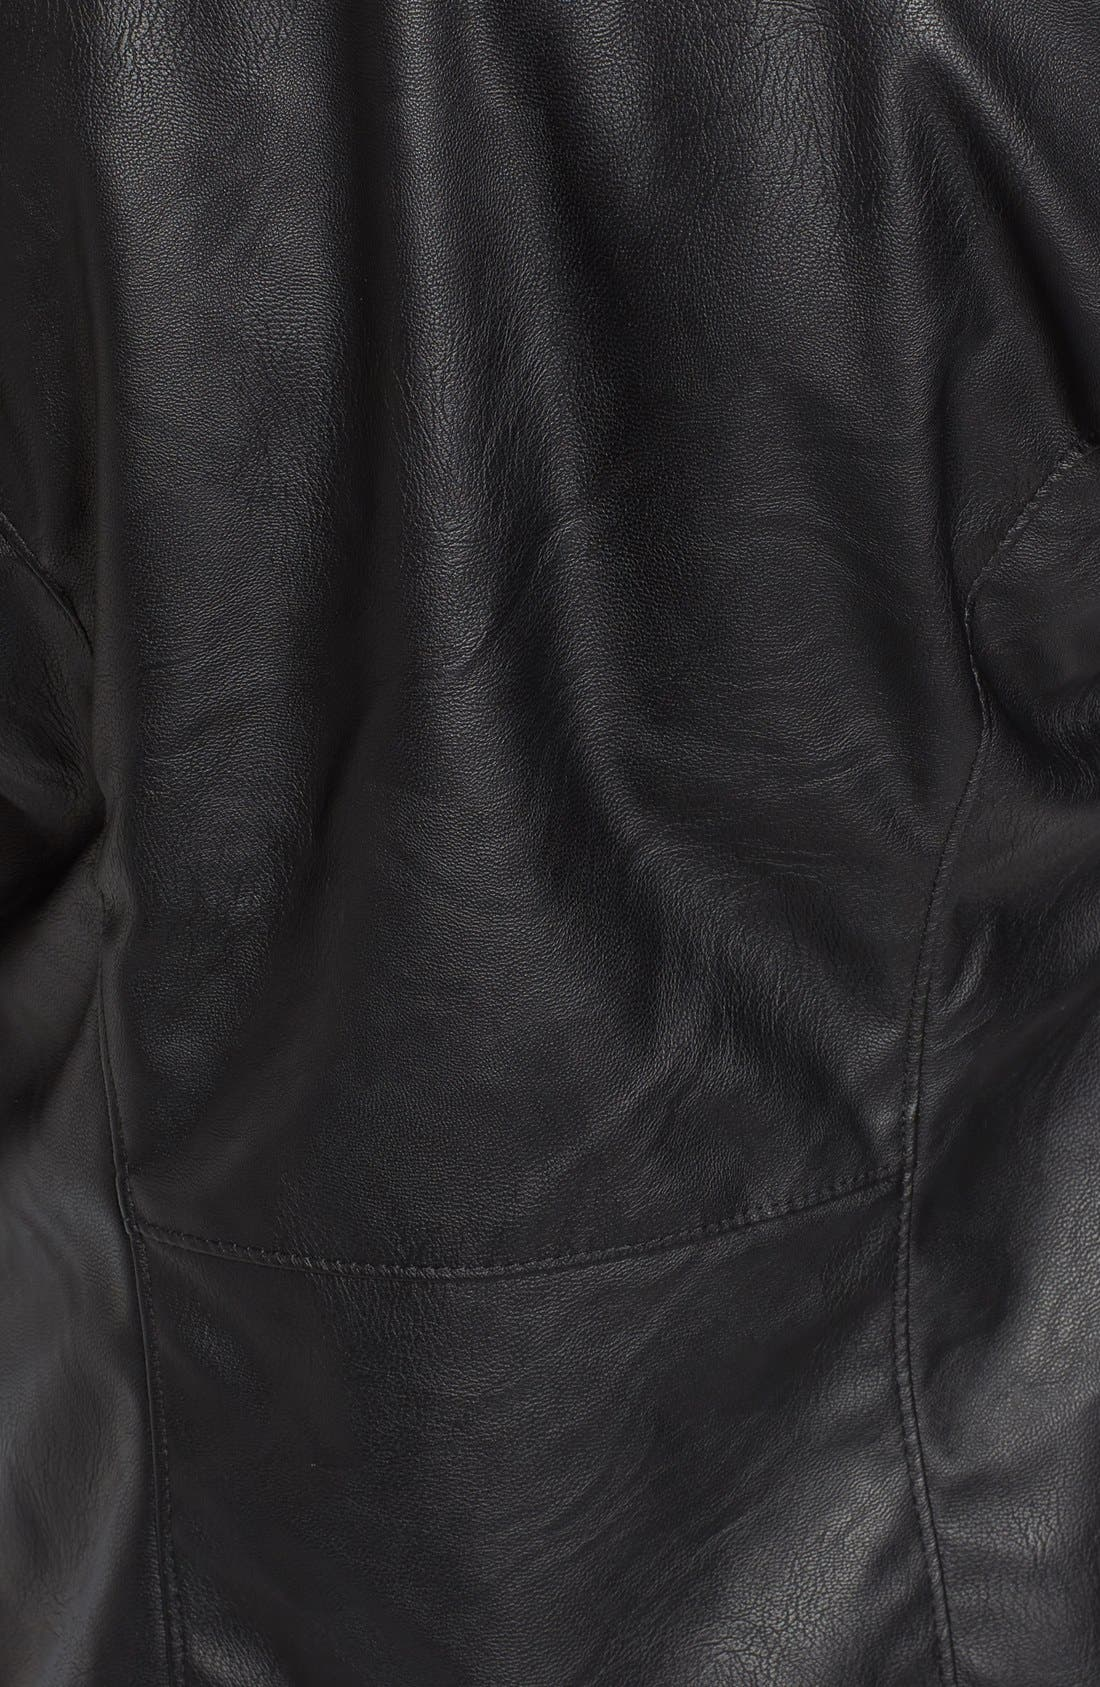 Mixed Media Faux Leather Drape Front Jacket,                             Alternate thumbnail 9, color,